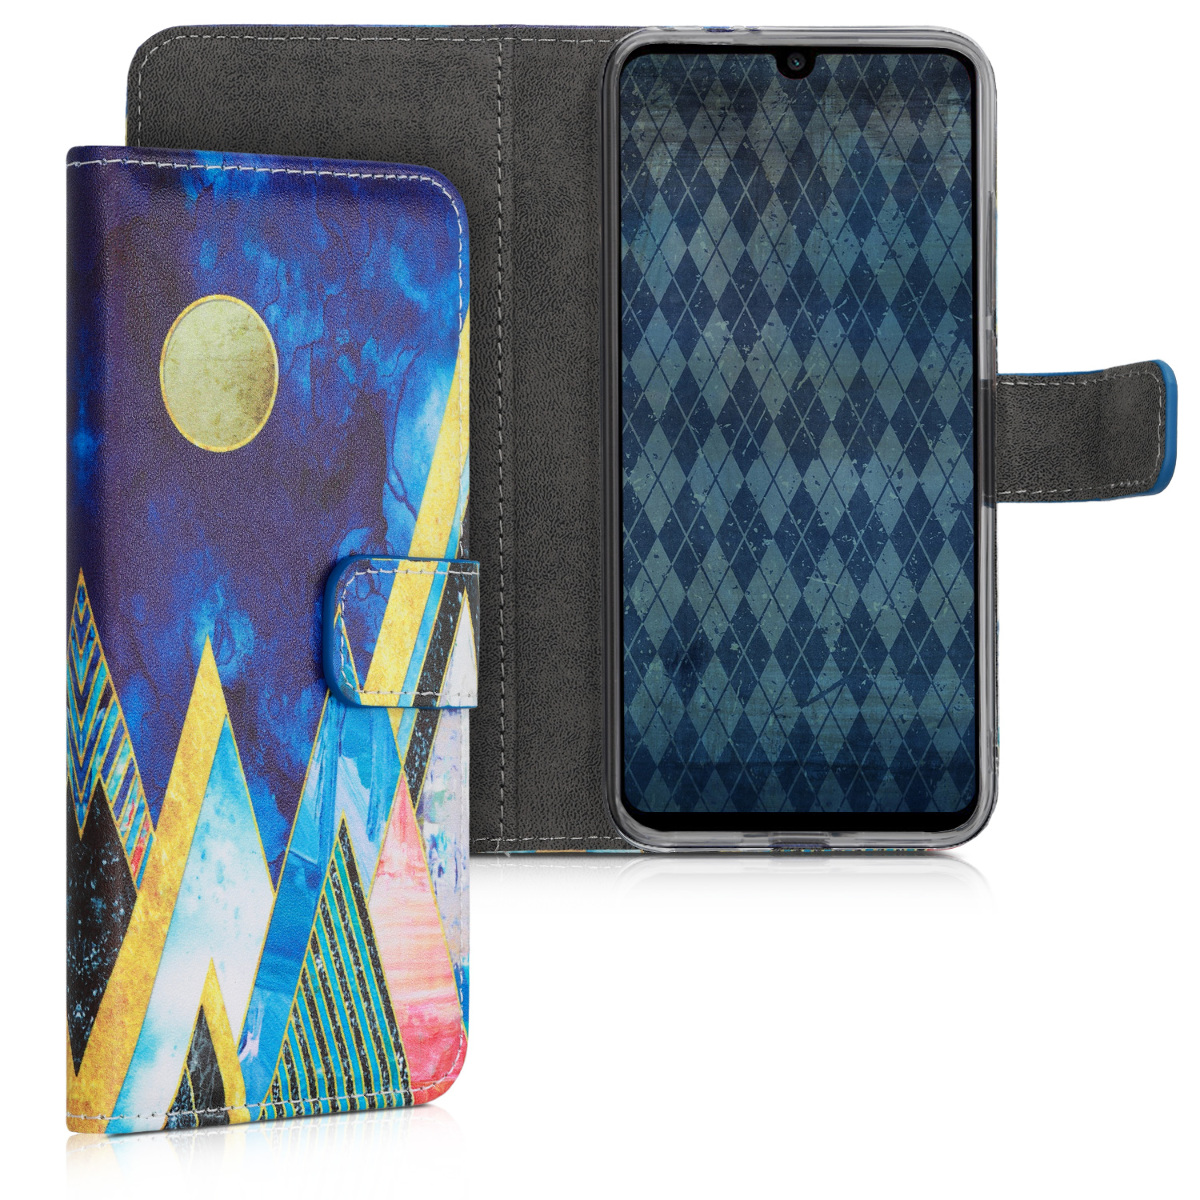 KW Θήκη - Πορτοφόλι Xiaomi Redmi Note 7 / Note 7 Pro - PU Leather Protective Flip Cover - Gold / Coral / Dark Blue (47572.04)